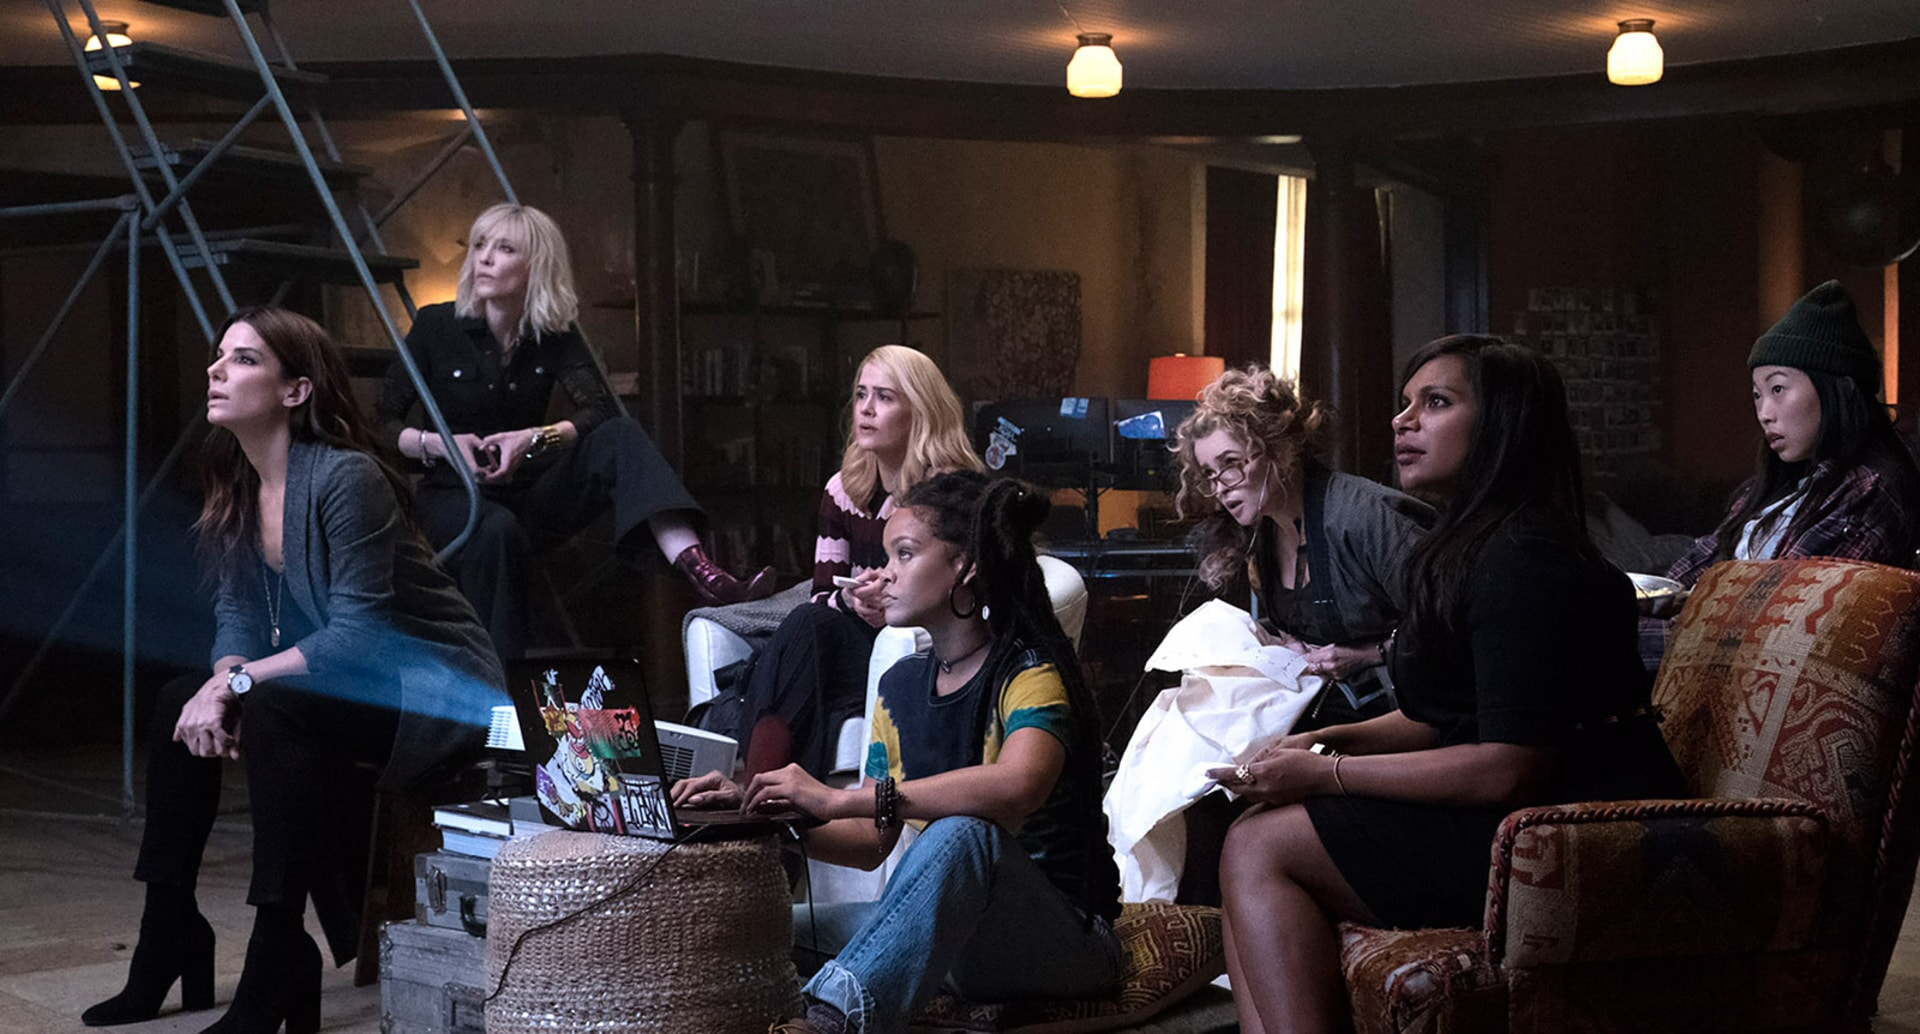 Cast of Ocean's 8 seated together in profile